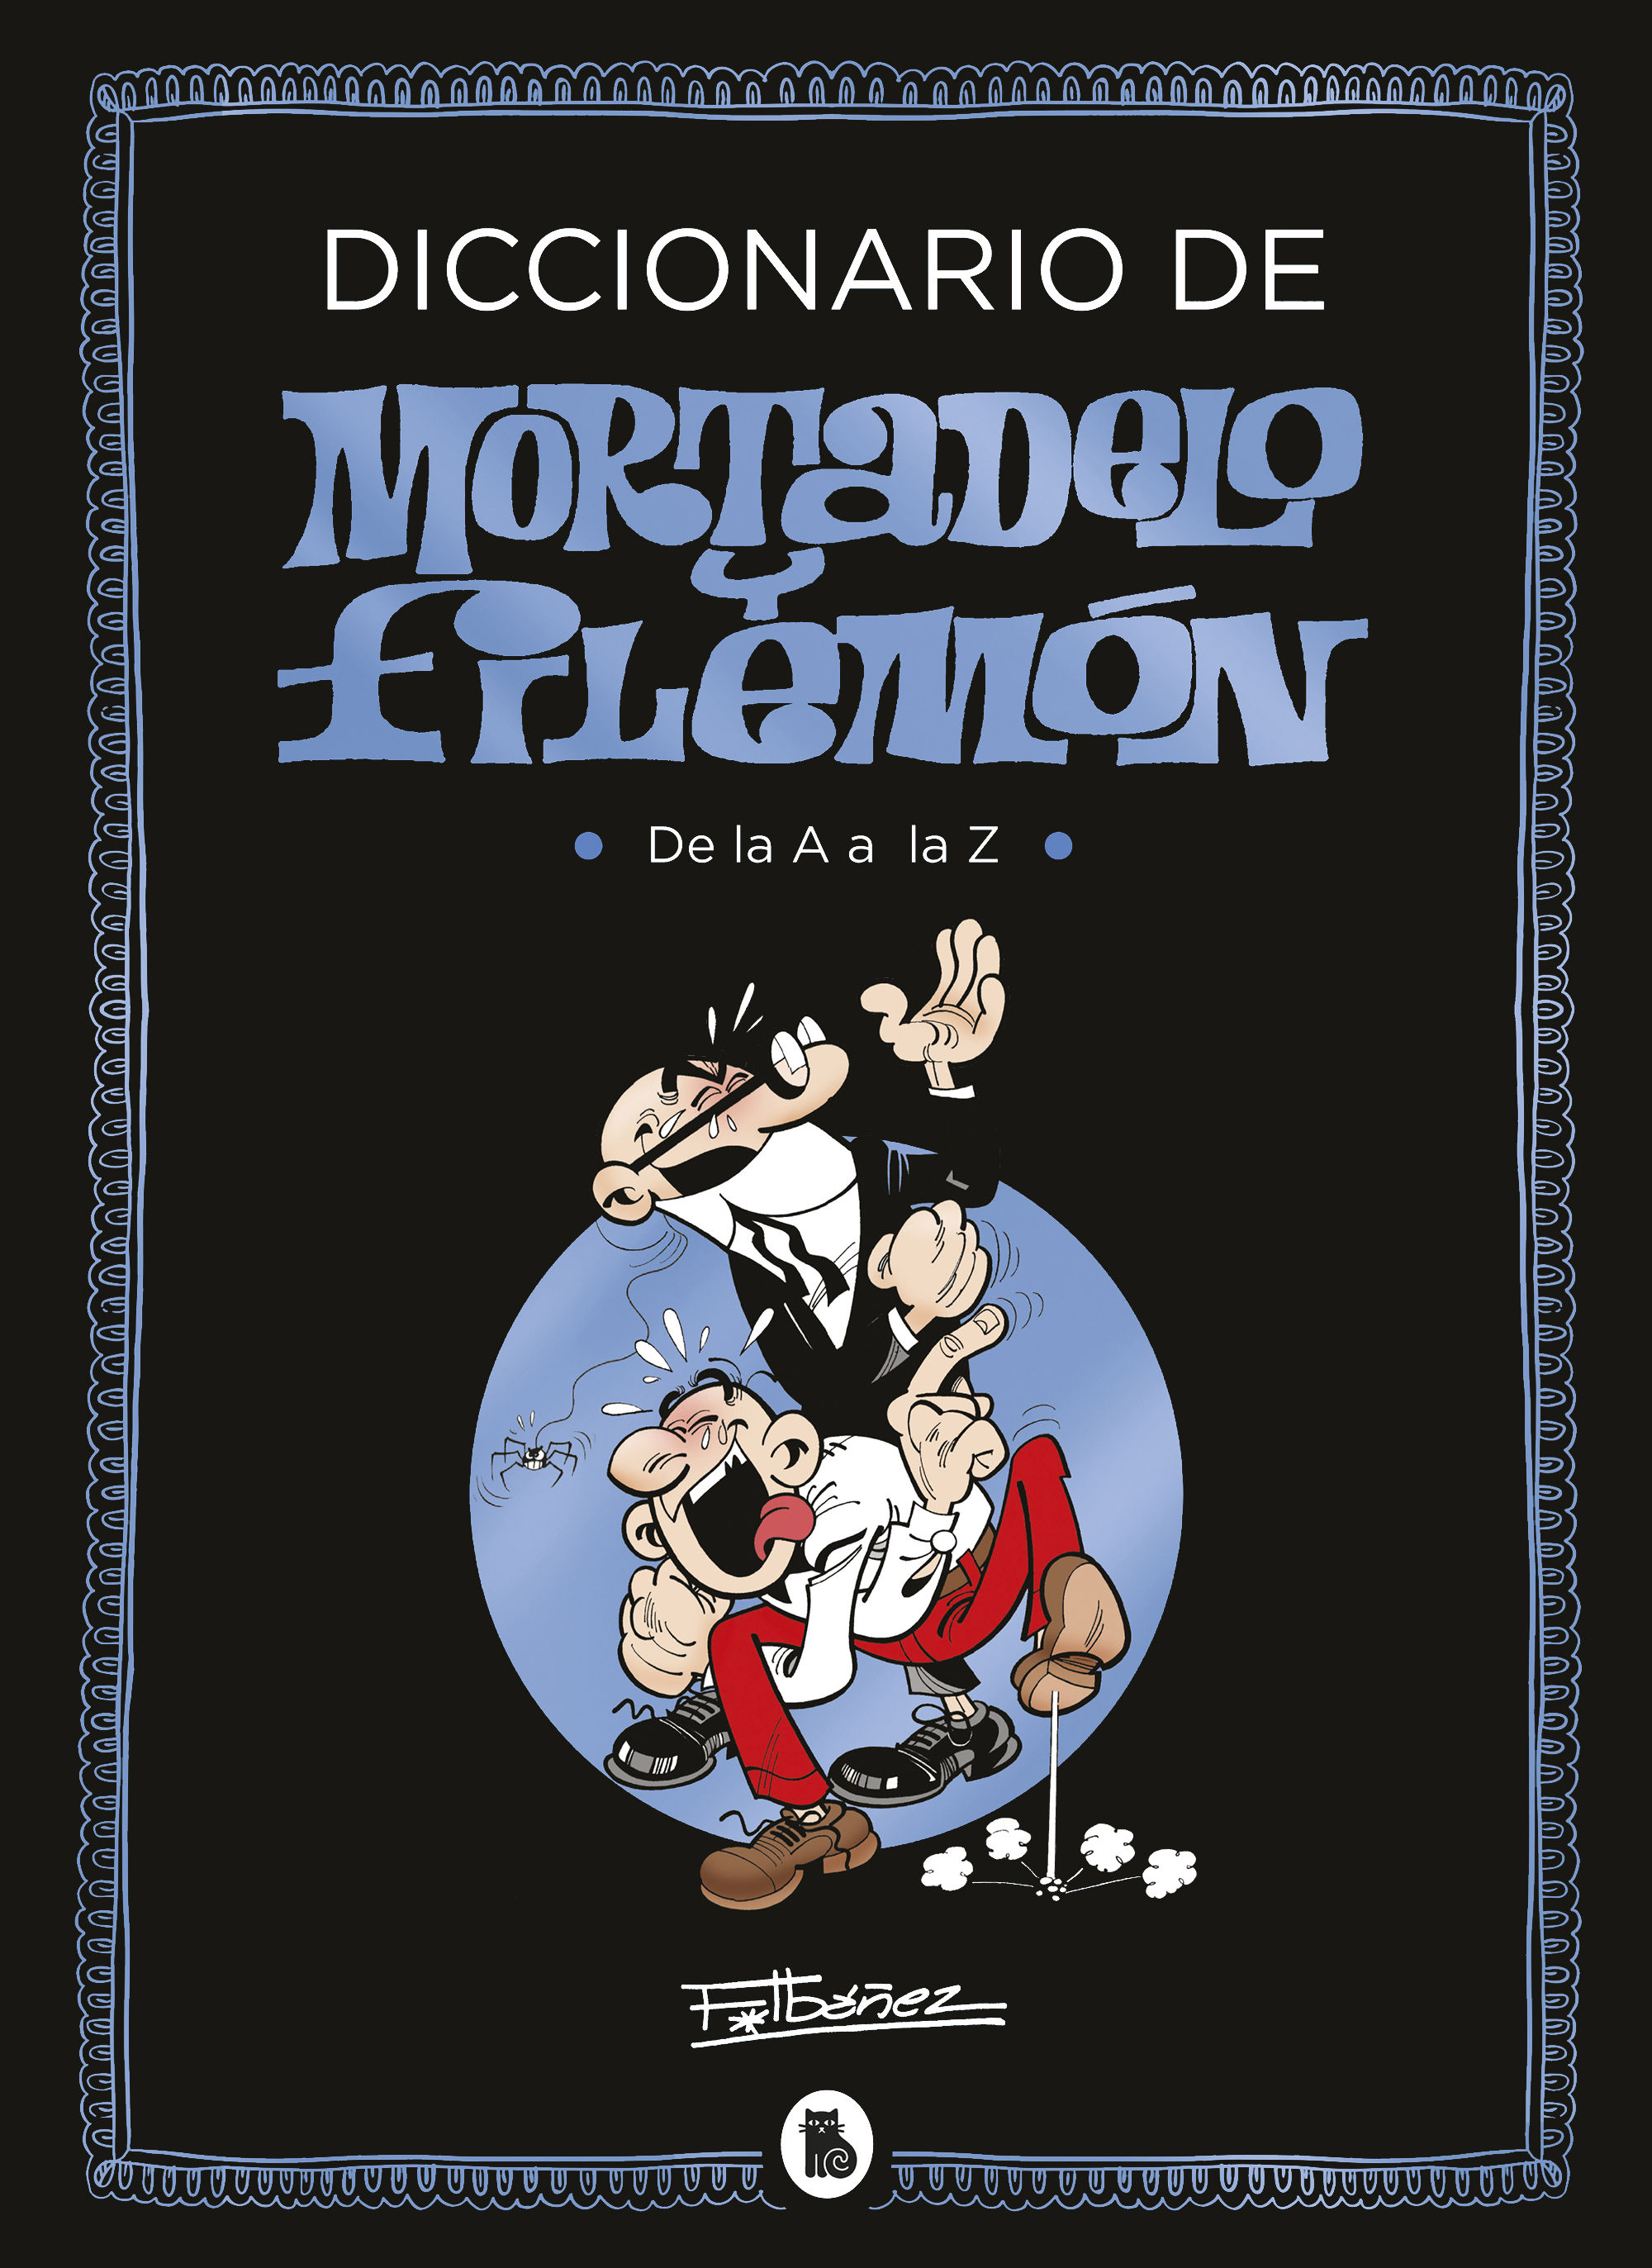 DICCIONARIO DE MORTADELO Y FILEMON